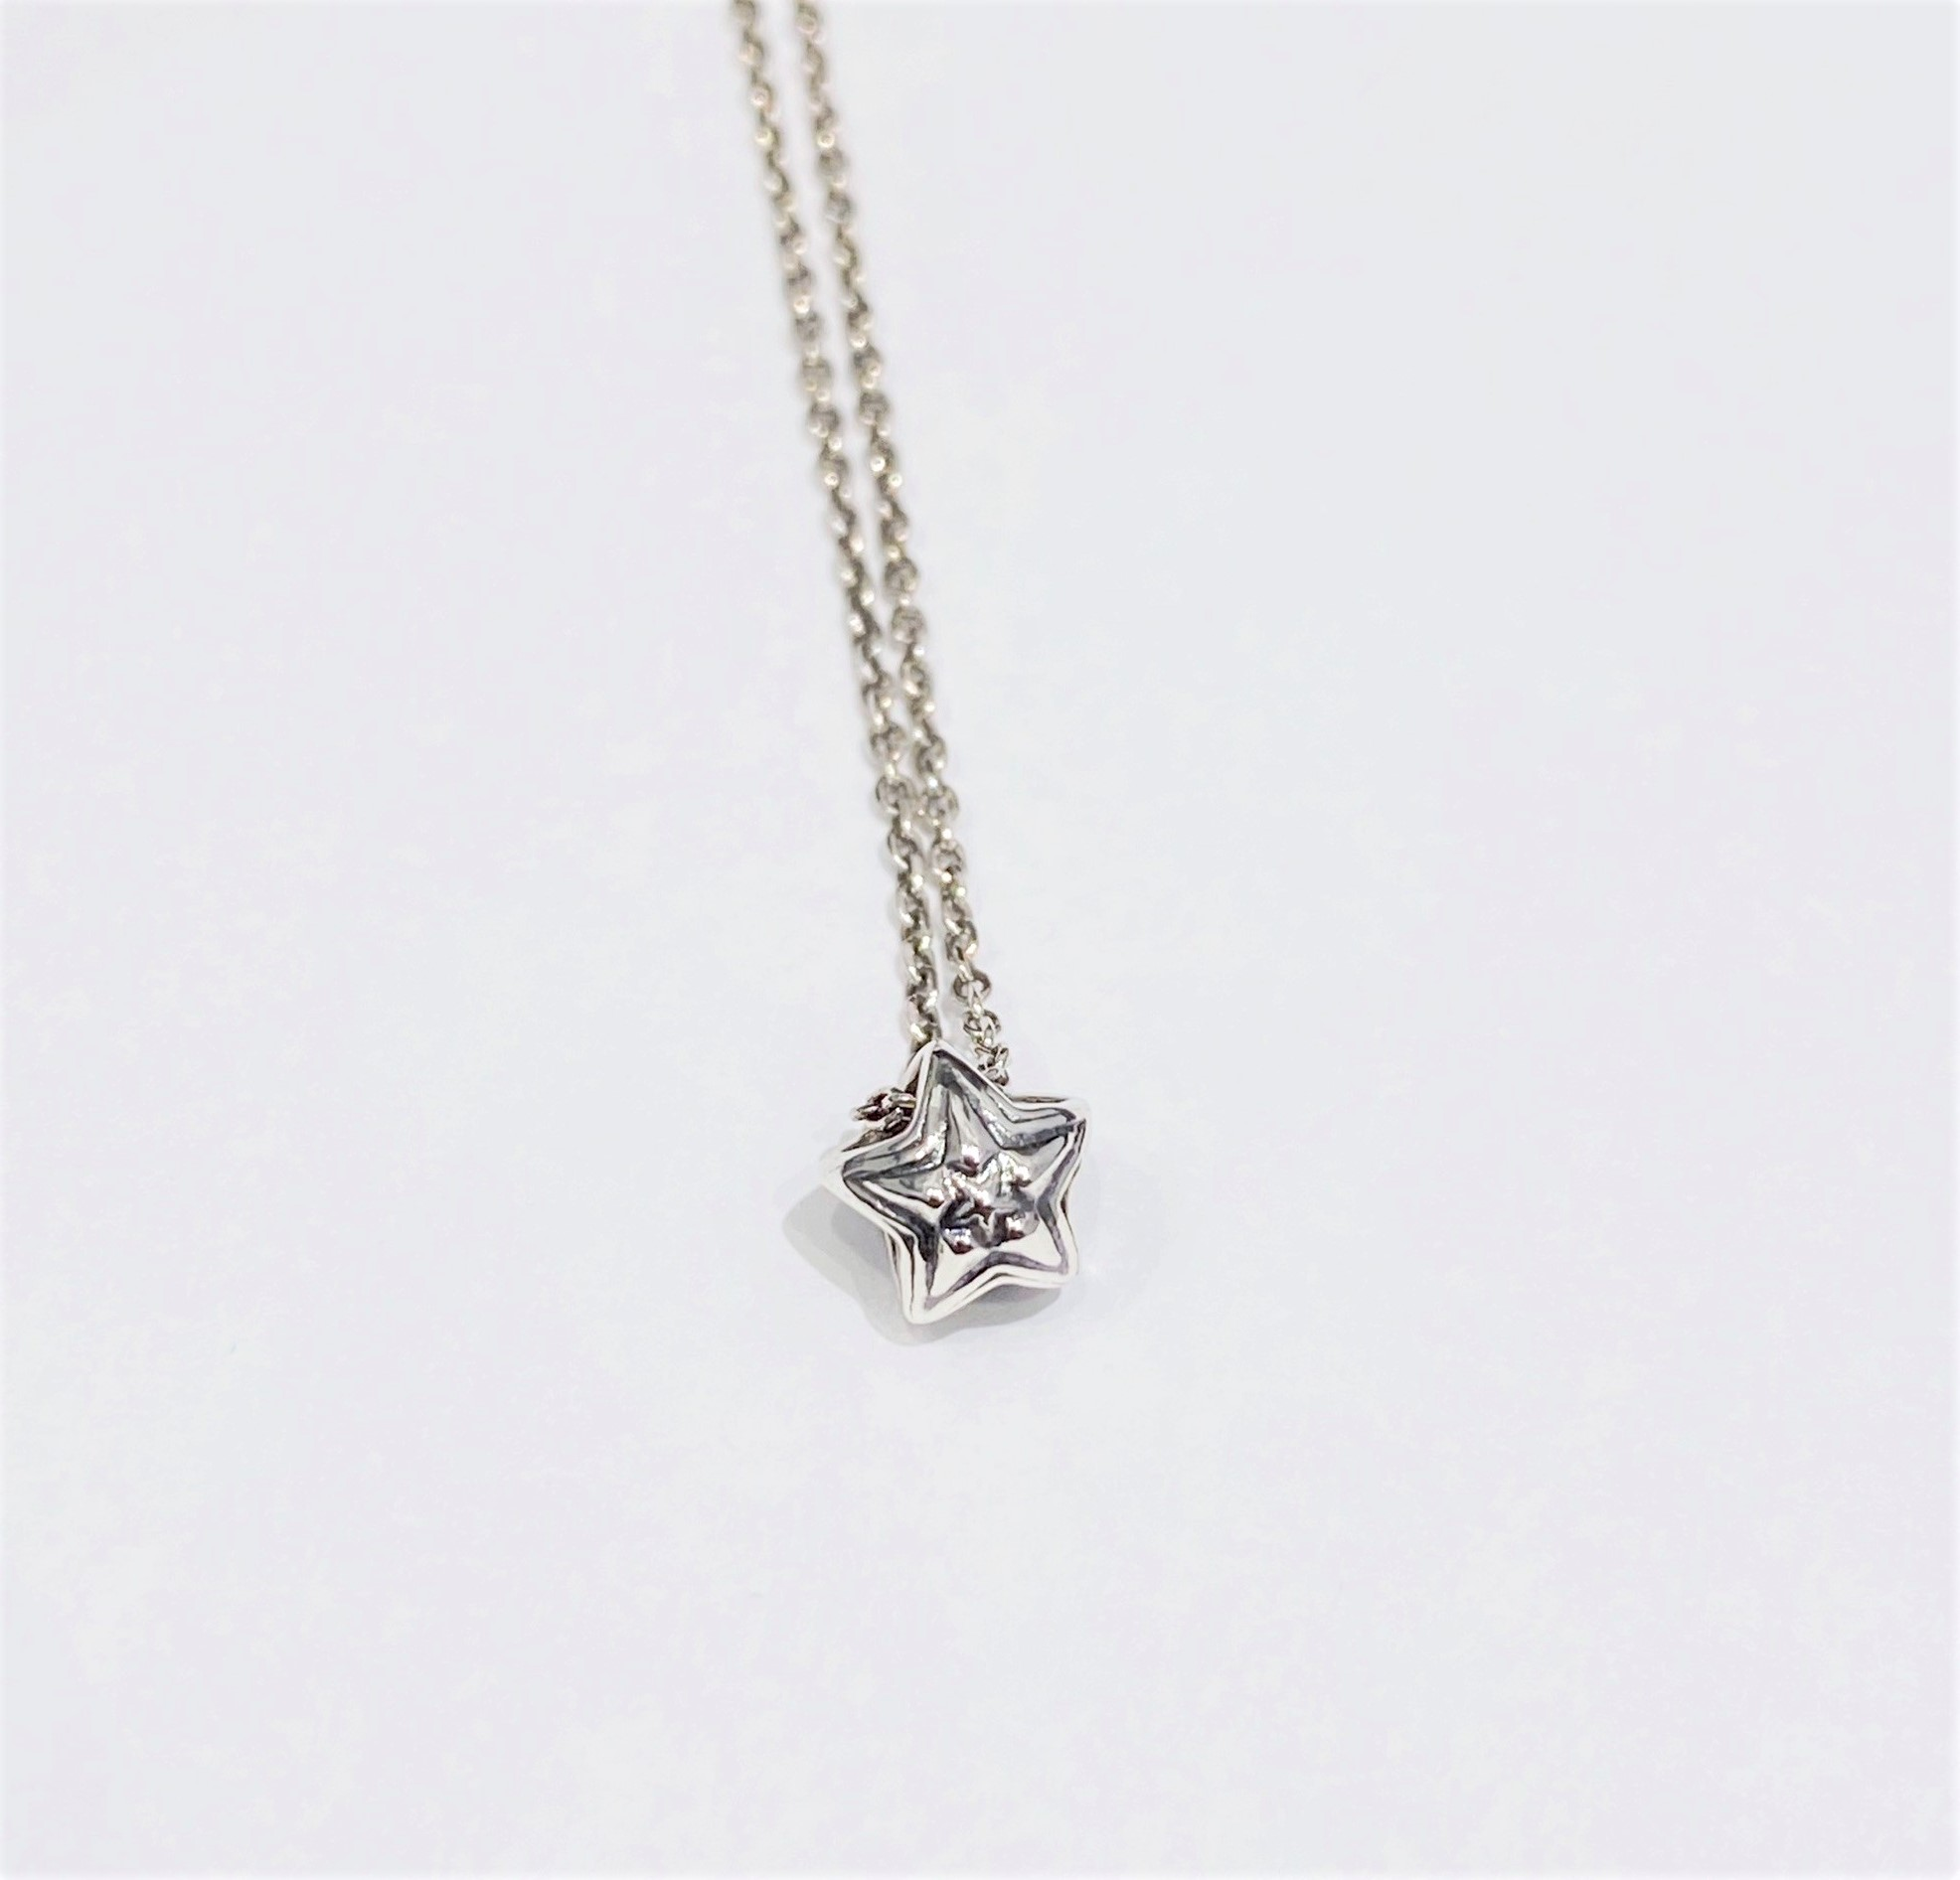 EXTRA TINY DOUBLE FACE STAR IN STAR STUD PENDANT (含細銀珠鏈16 Inch)     [USD $330]